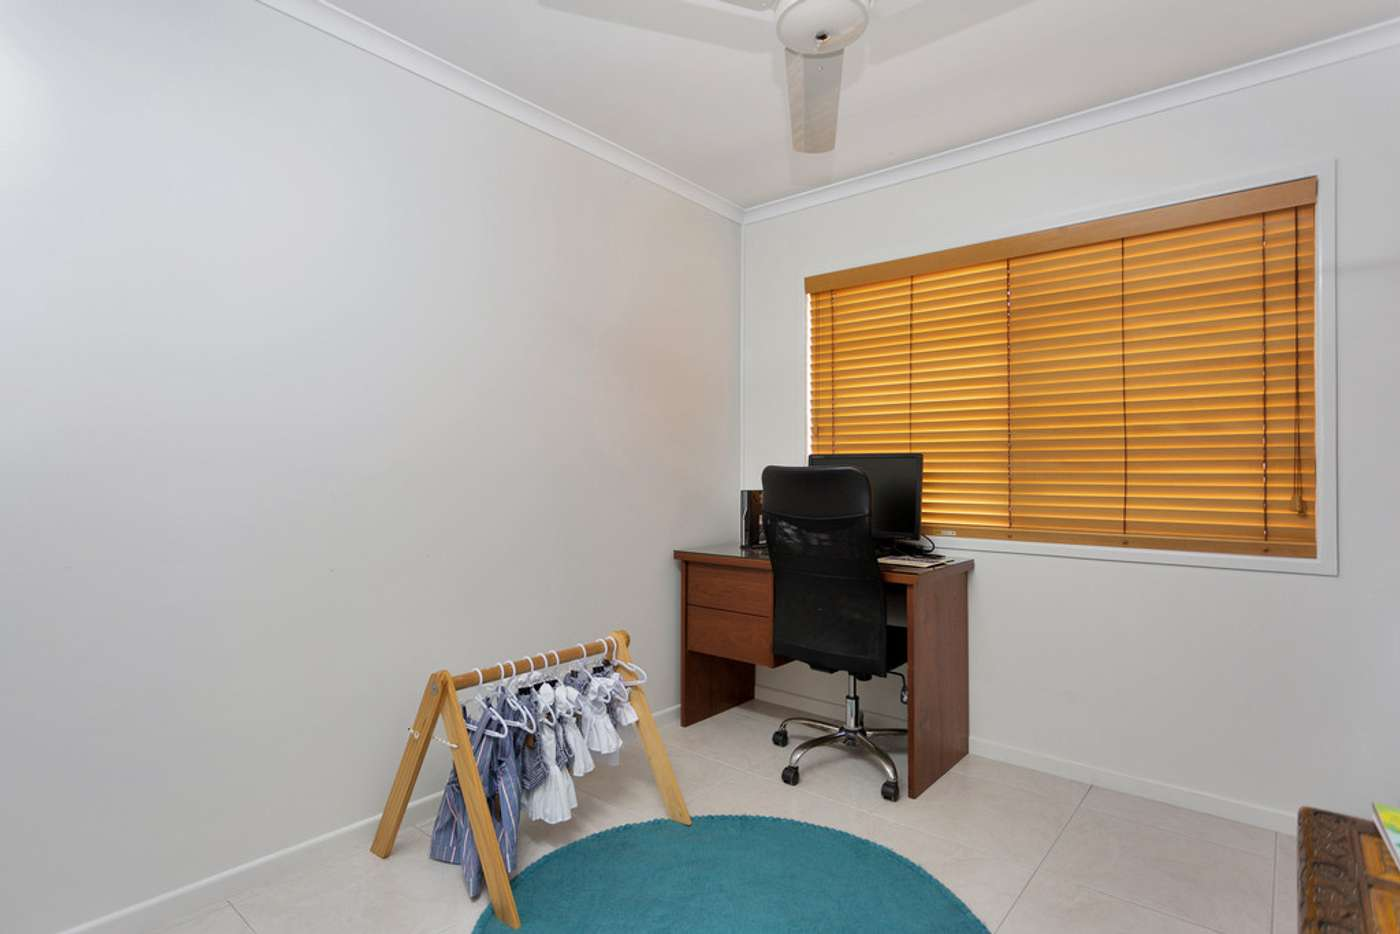 Sixth view of Homely house listing, 10 Knight Street, Mount Pleasant QLD 4740